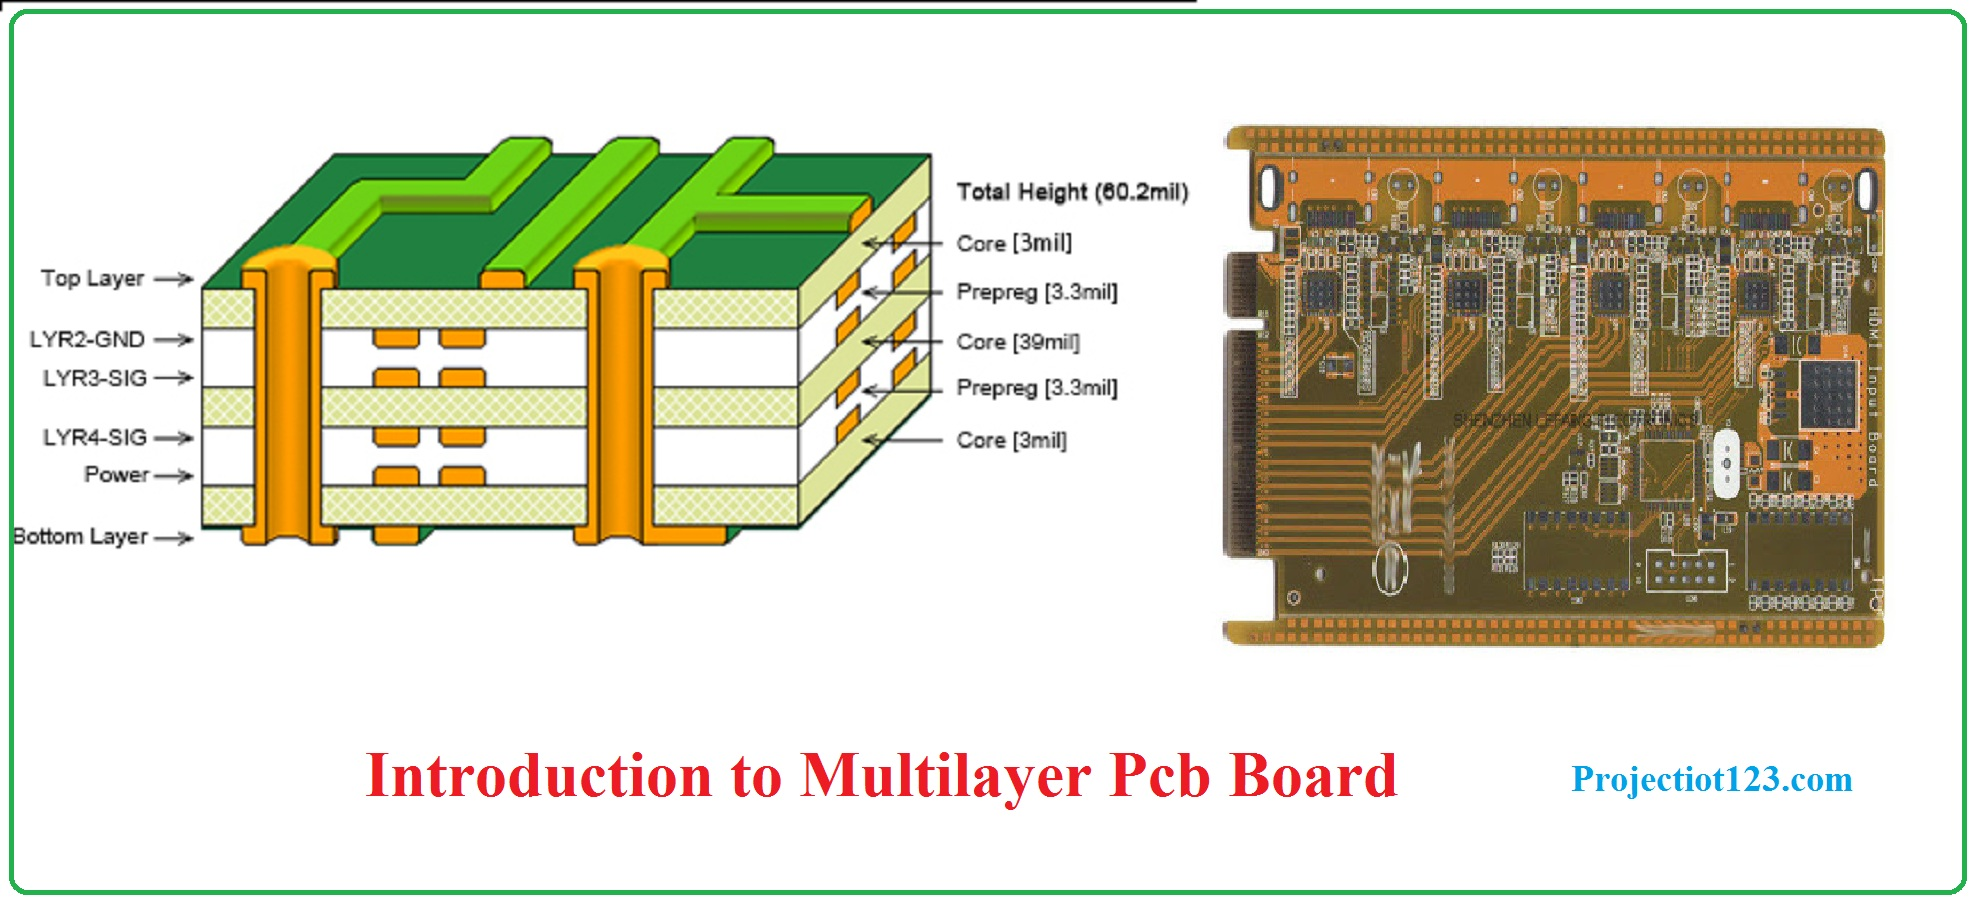 introduction to multilayer pcb board